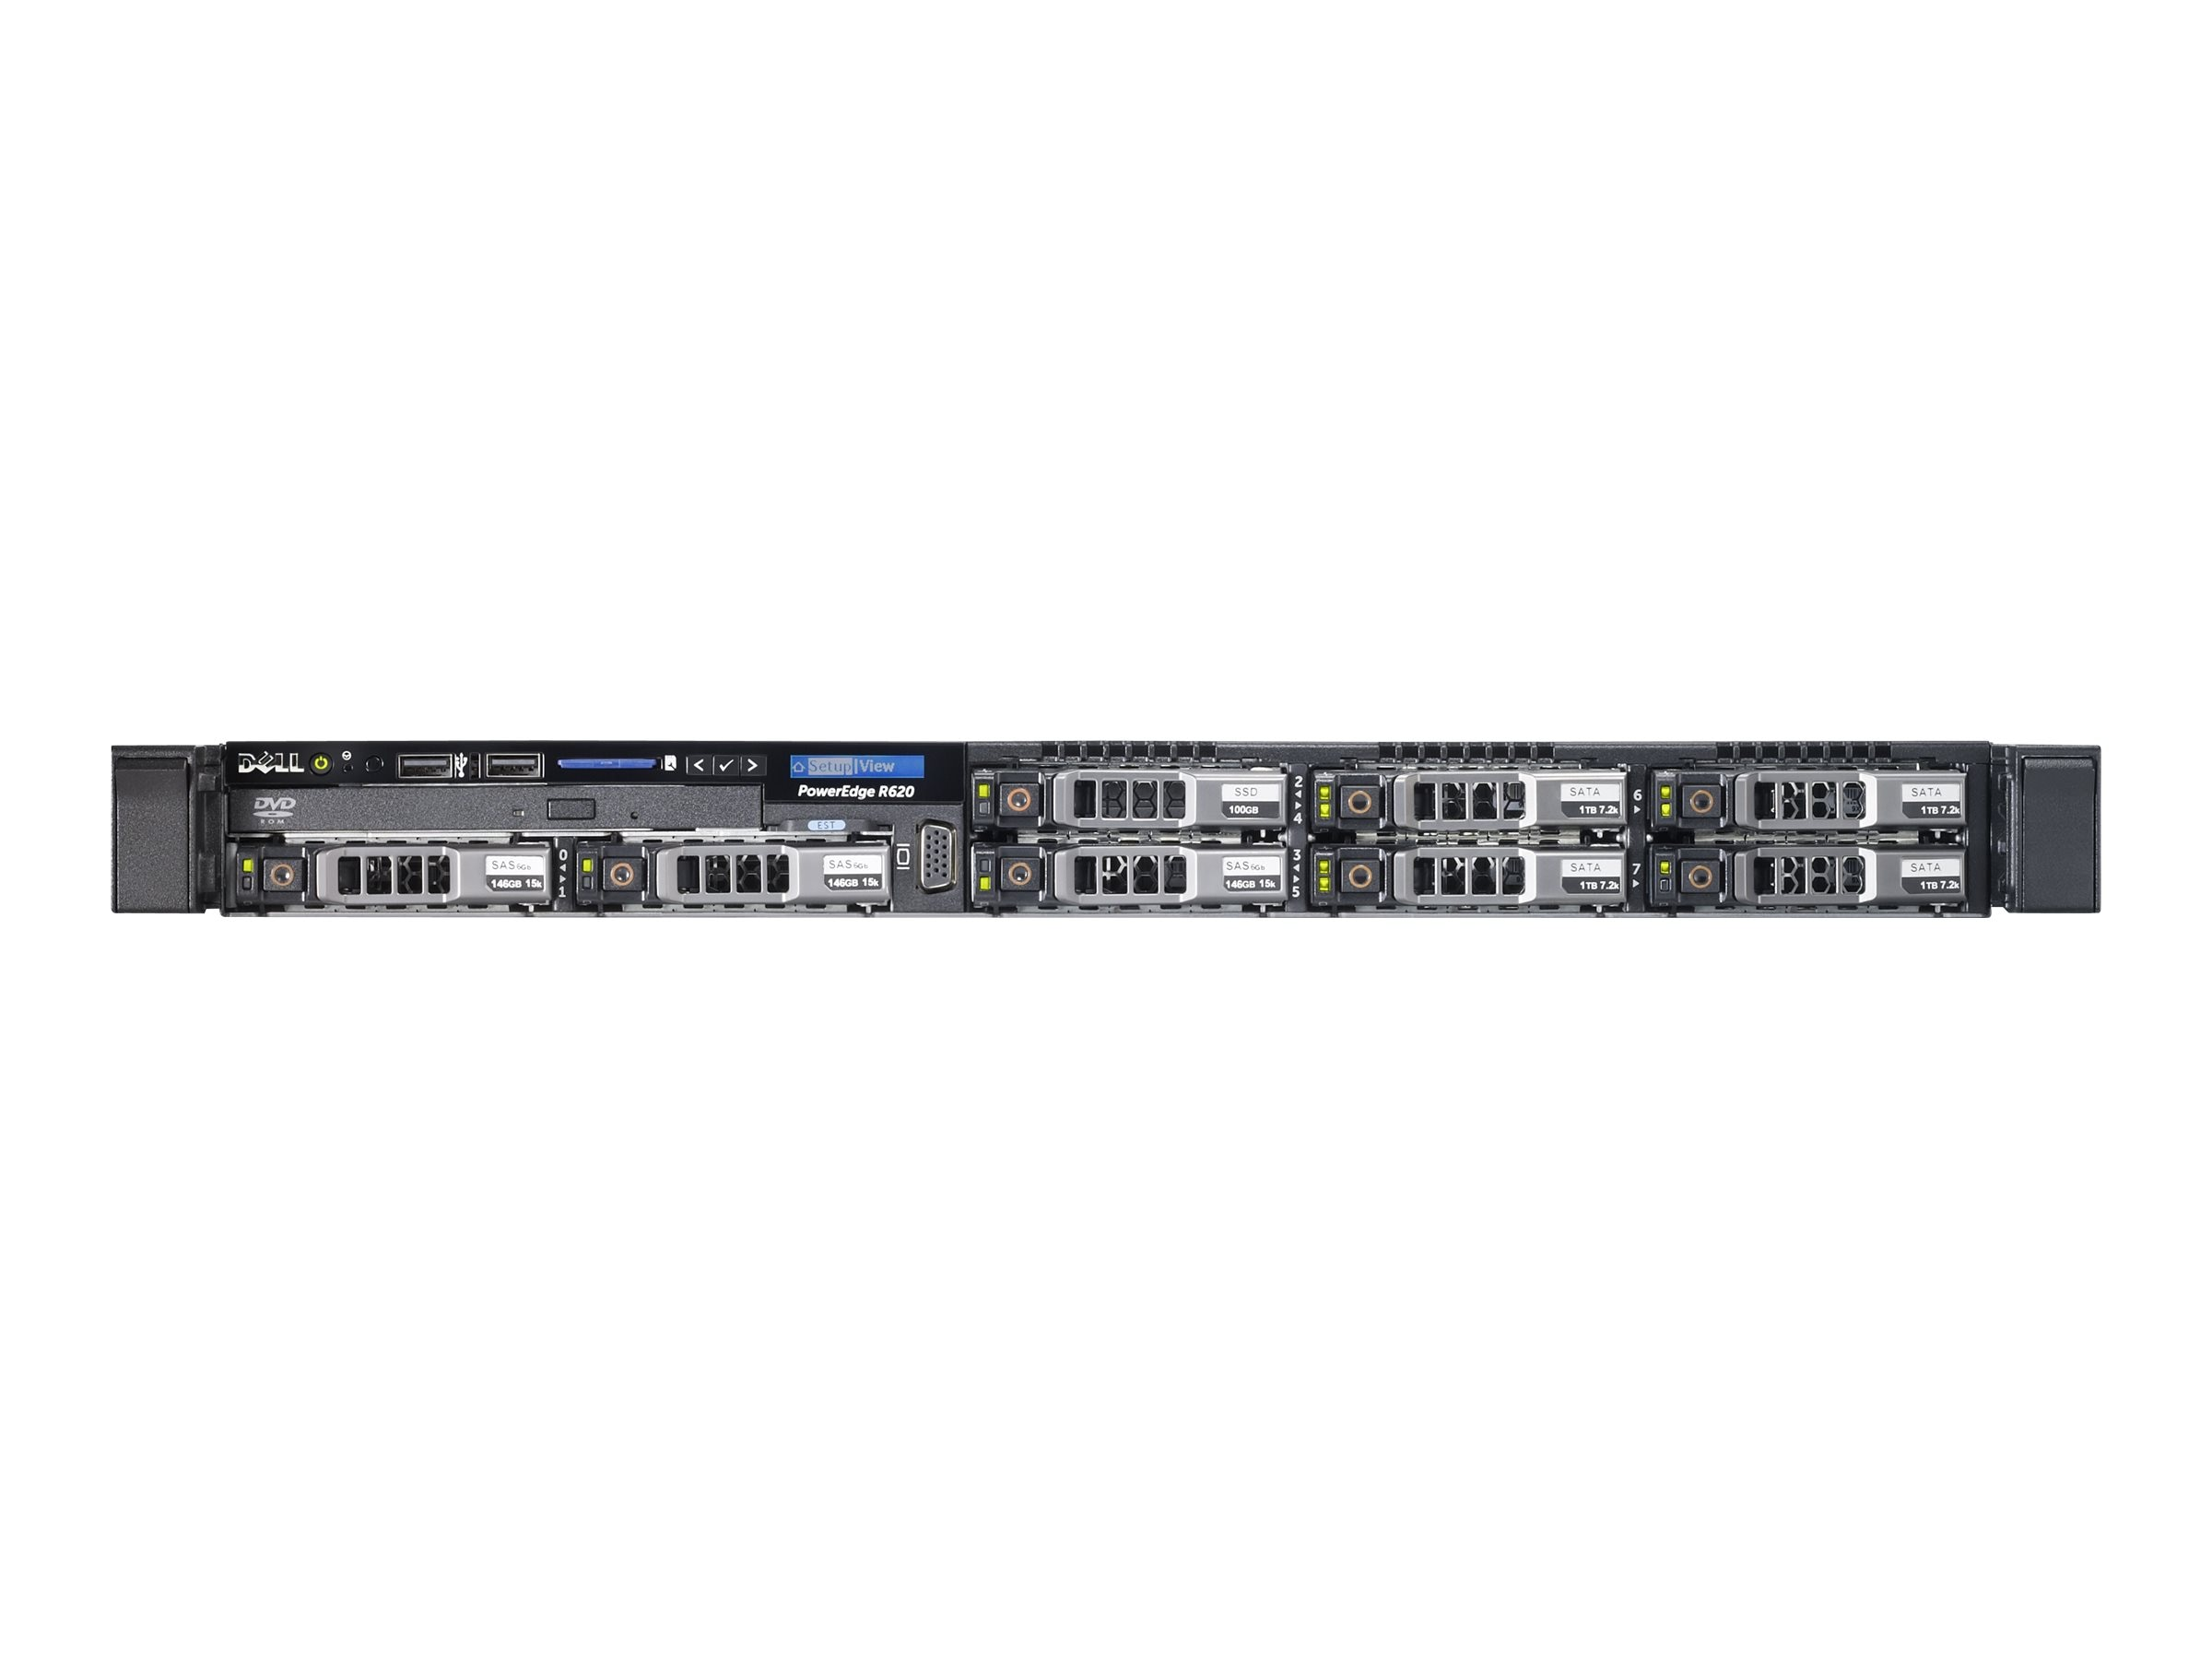 Dell PowerEdge R620 Intel 2.1GHz Xeon, 462-7555